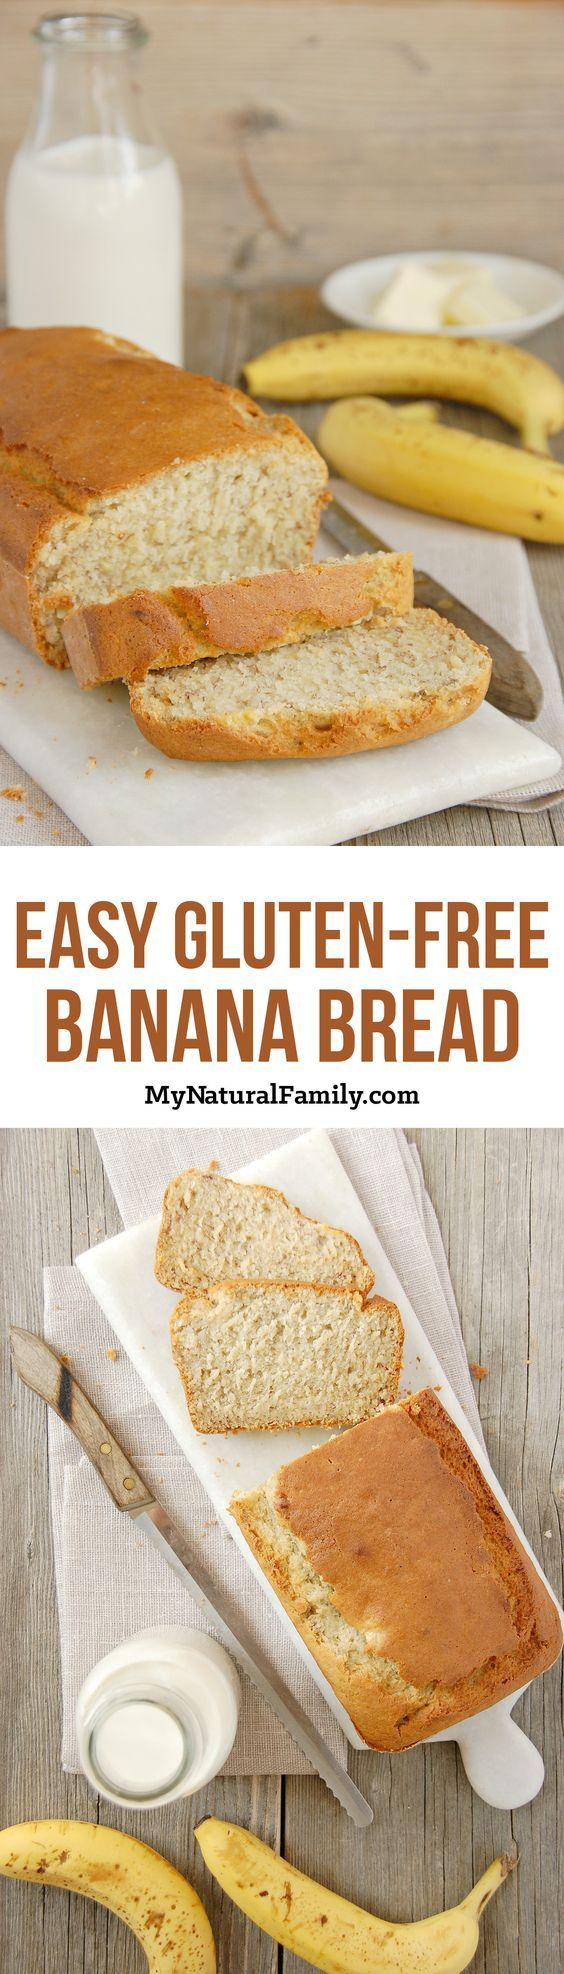 Easy Gluten-Free Banana Bread Recipe